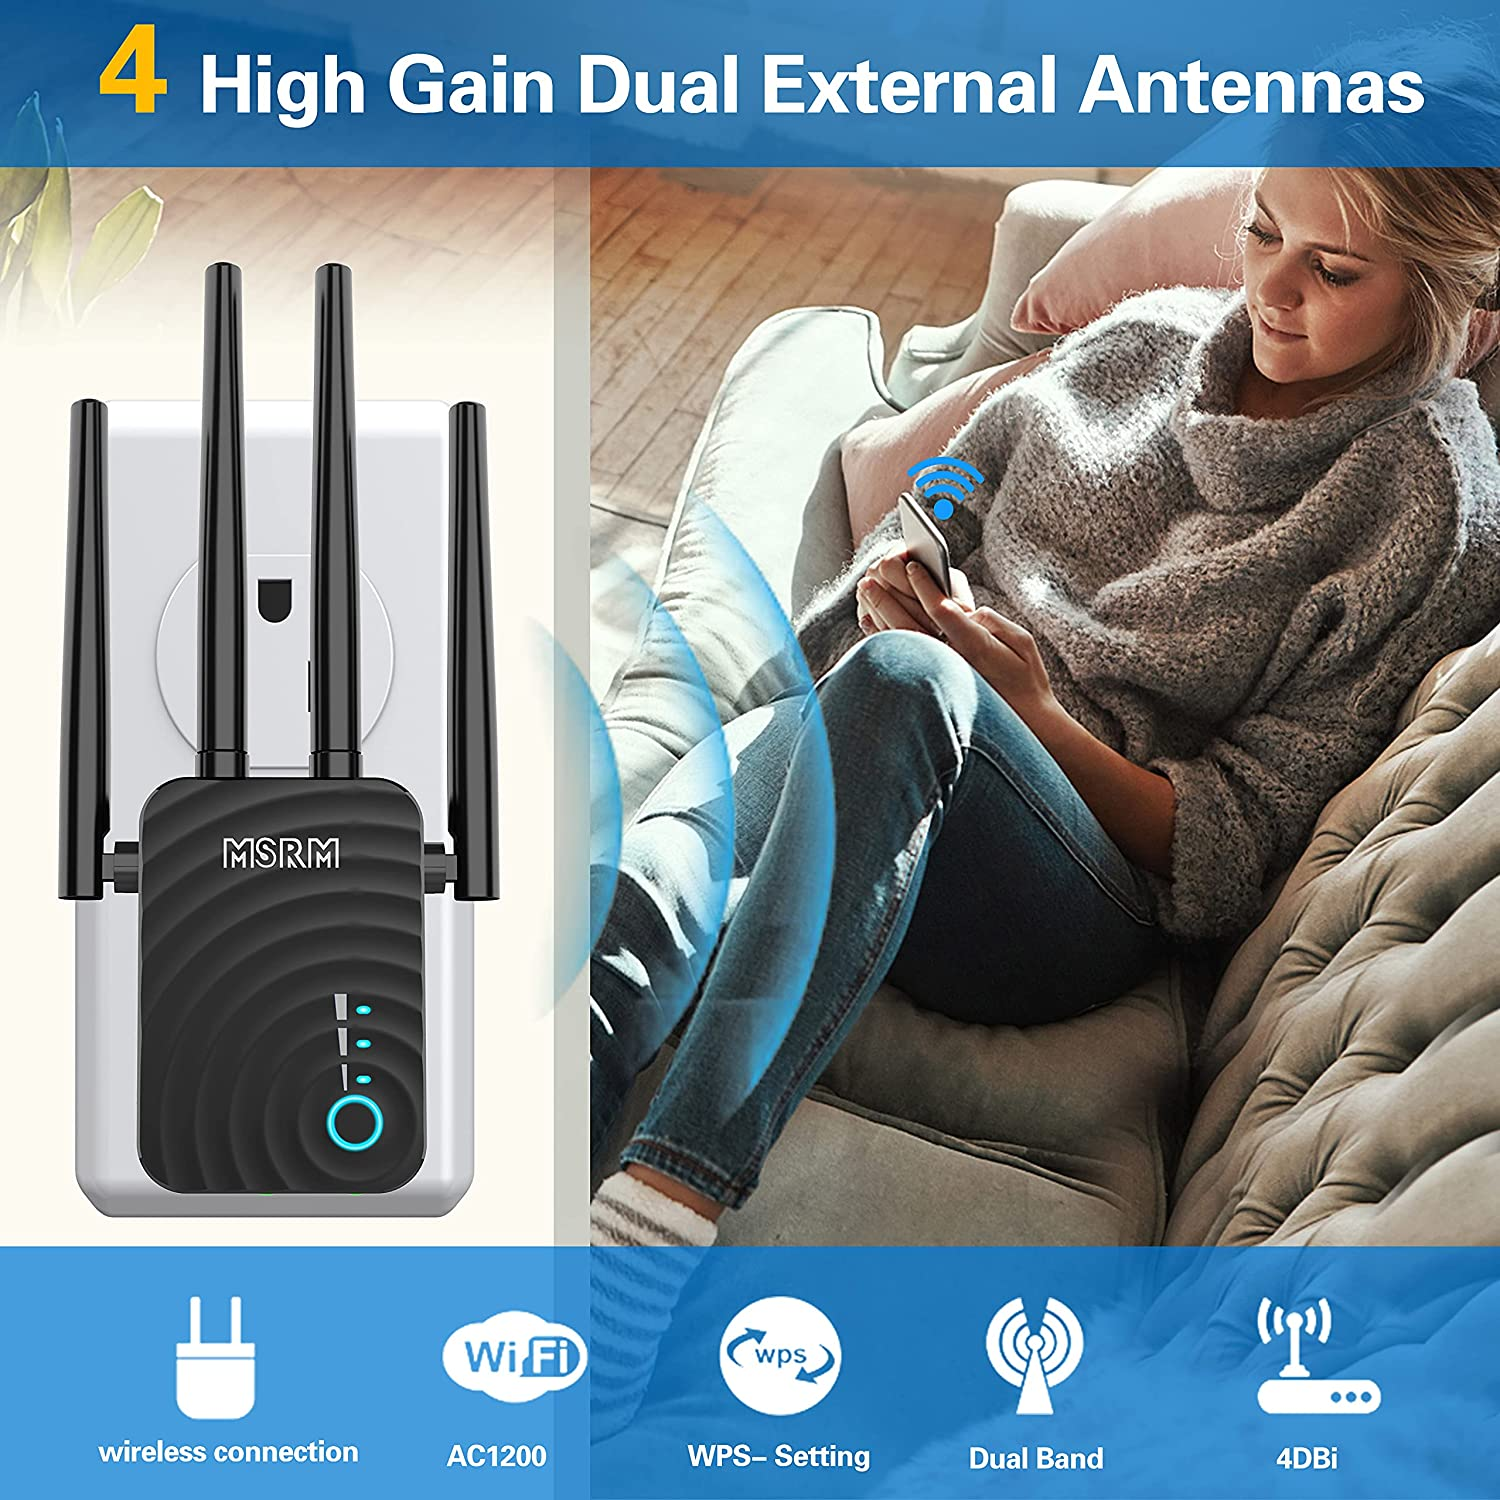 2021 Upgraded WiFi Extender WiFi Range Extender Wireless Internet Booster Cover up to 3000 sq.ft & 30 Device Wireless Signal Booster Repeater